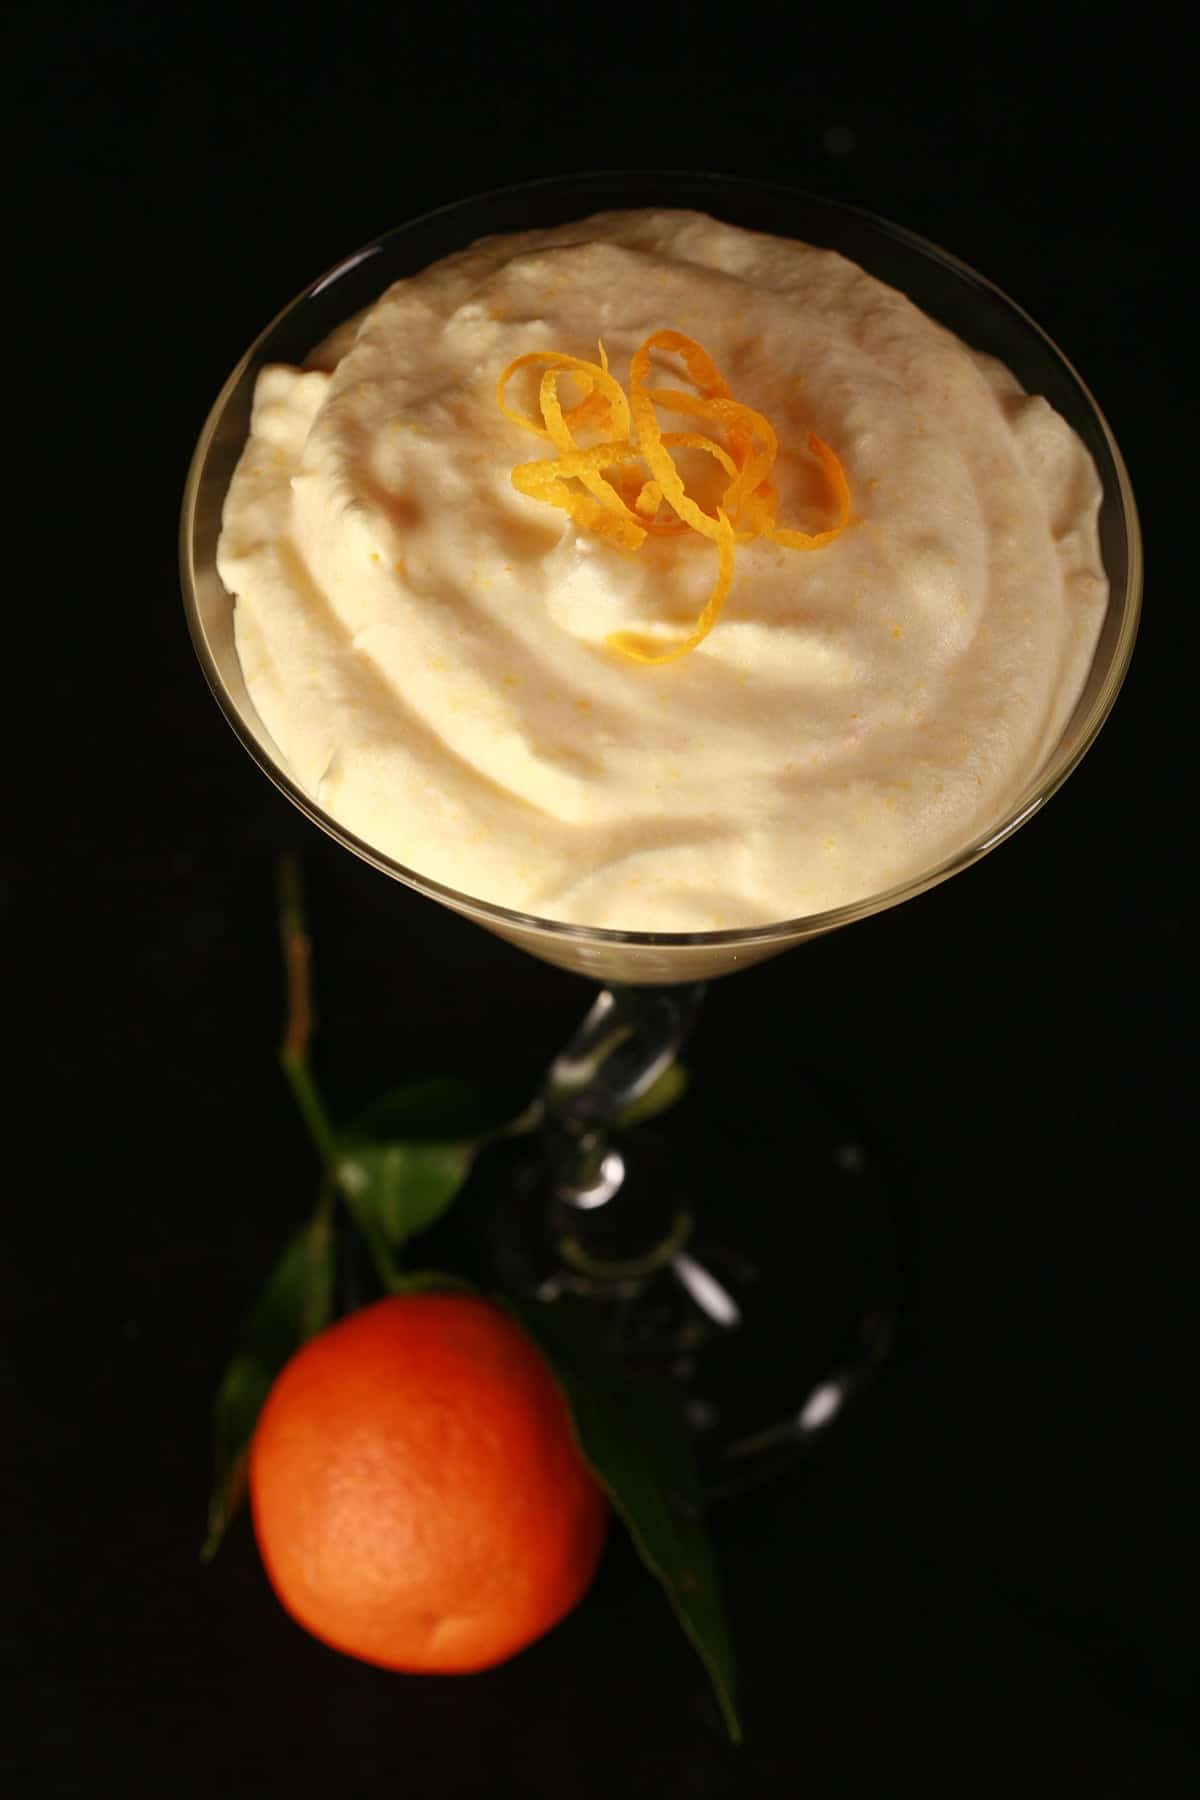 A martini glass is filled with an orange coloured clementine mousse. A clementine orange sits at the base of the glass.